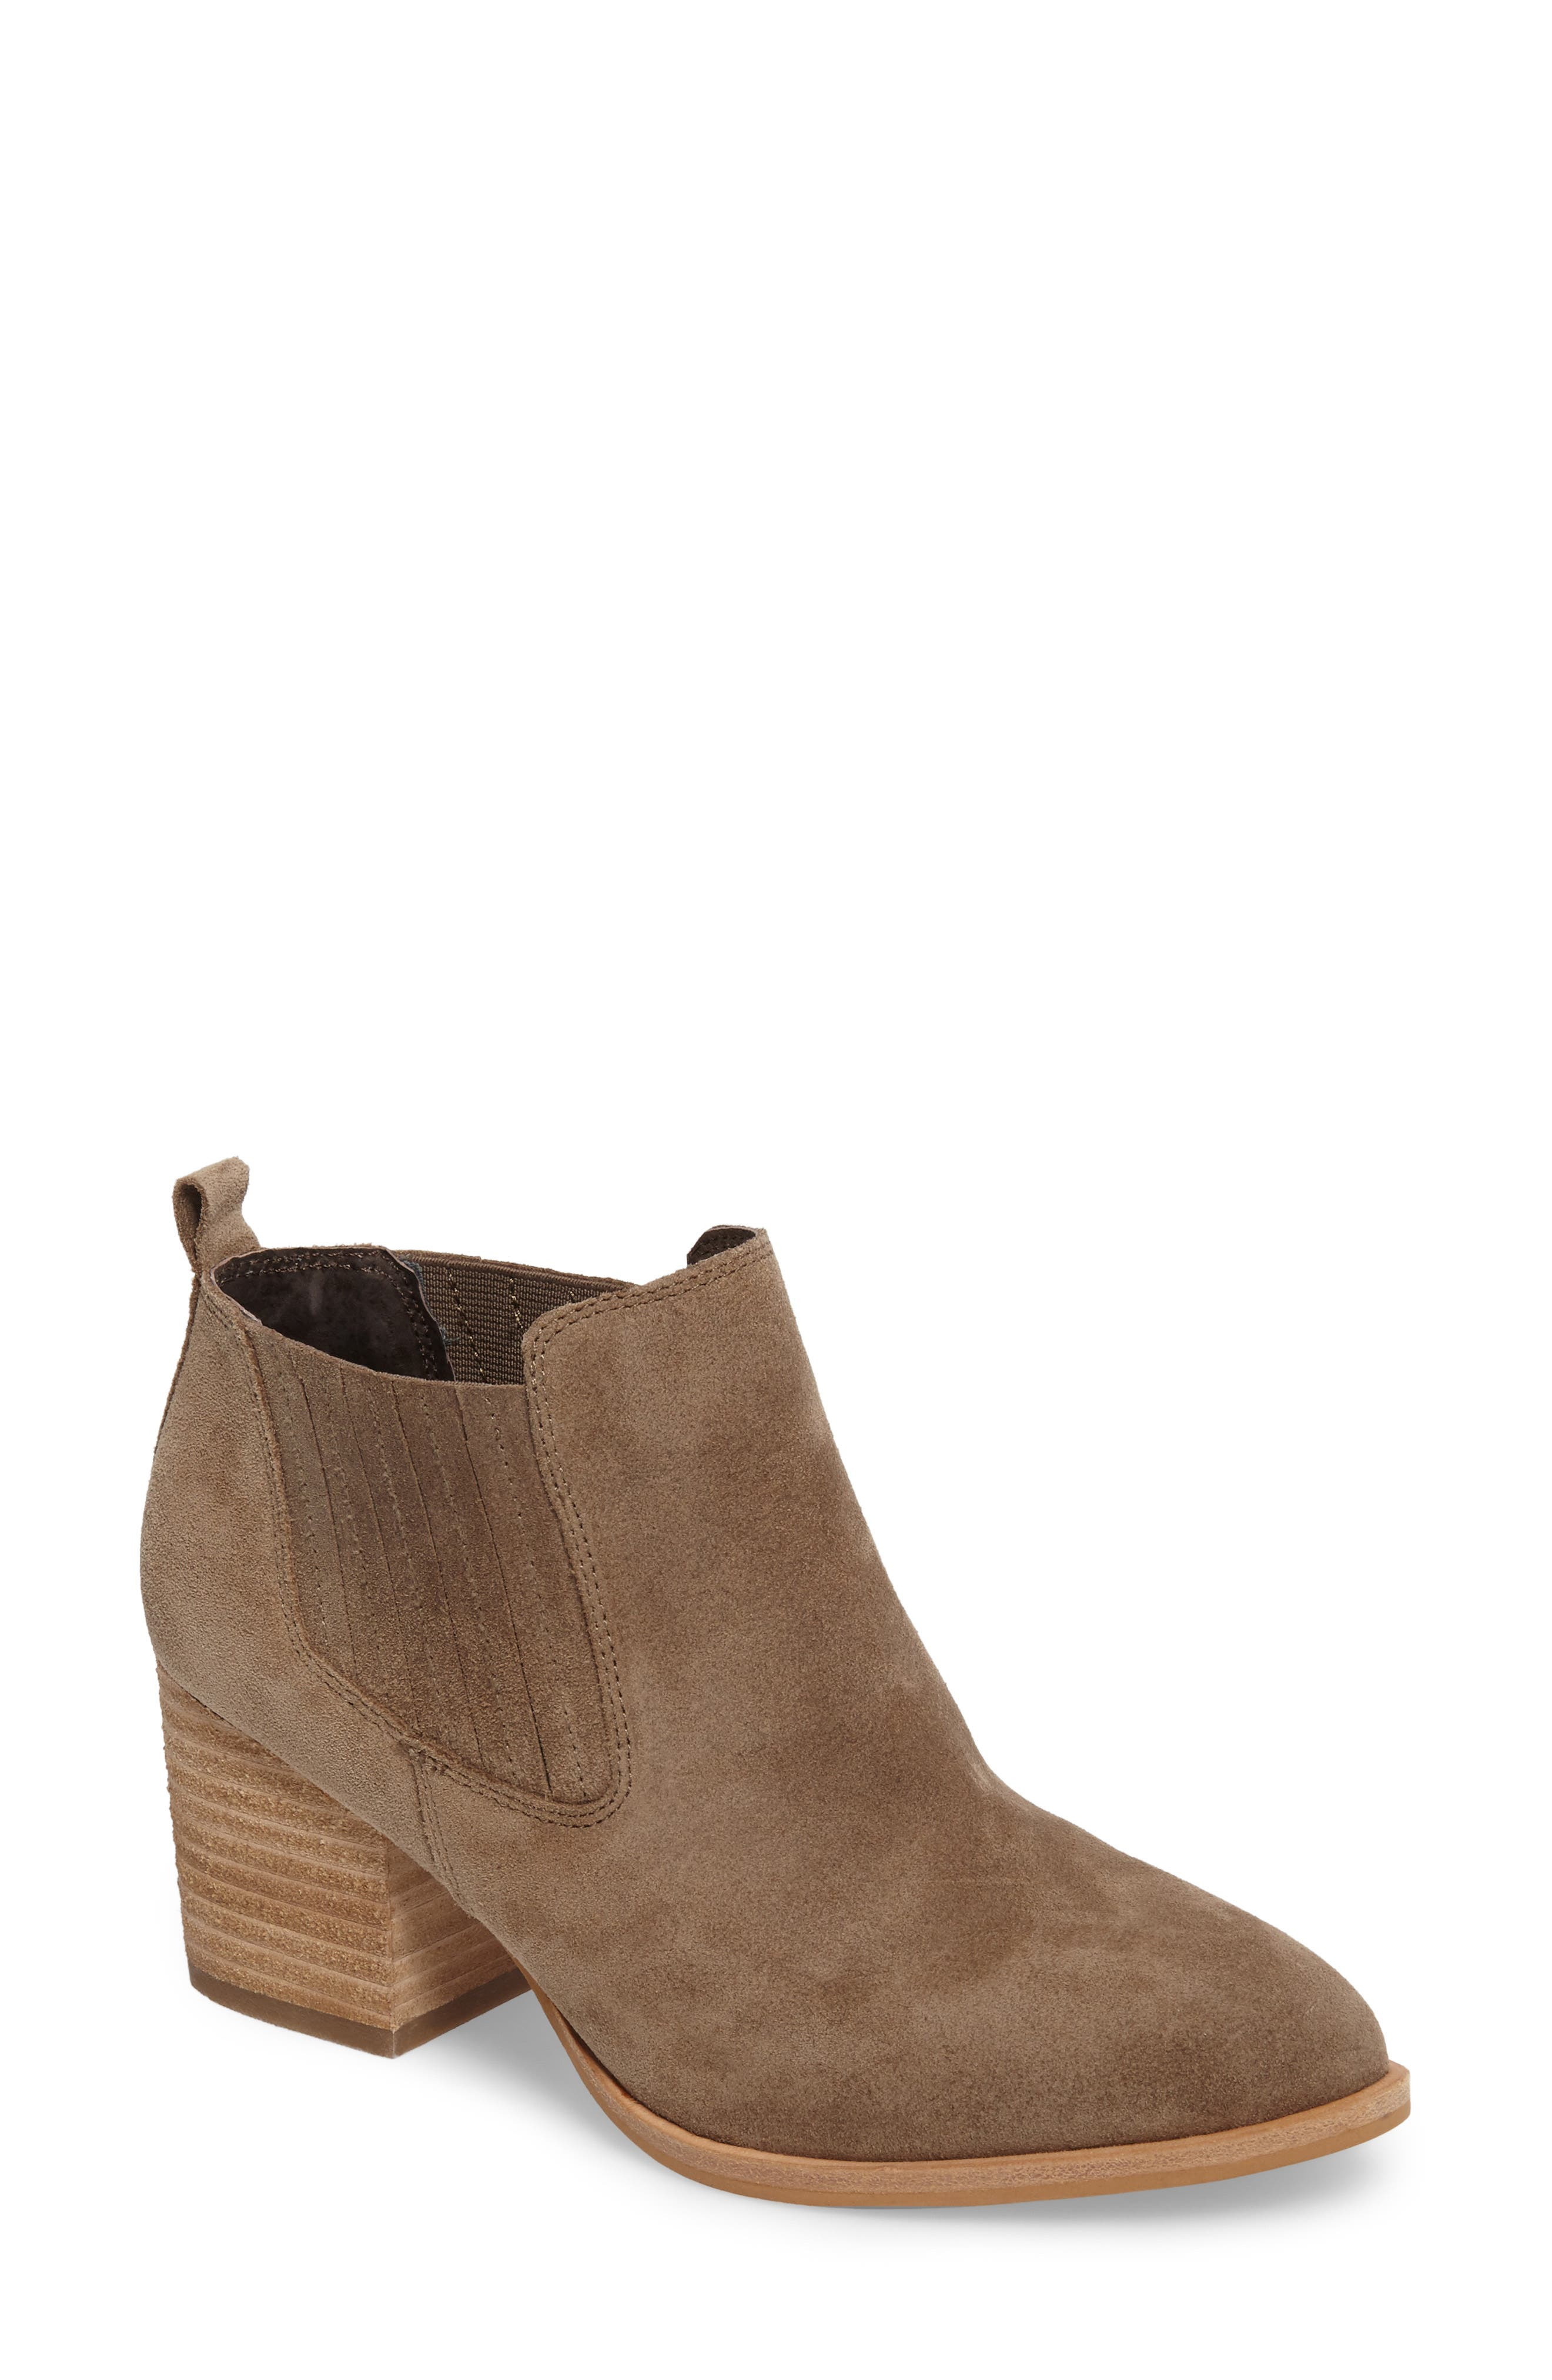 Olicia Gored Bootie,                             Main thumbnail 1, color,                             MARMOTTA LIGHT GREY SUEDE